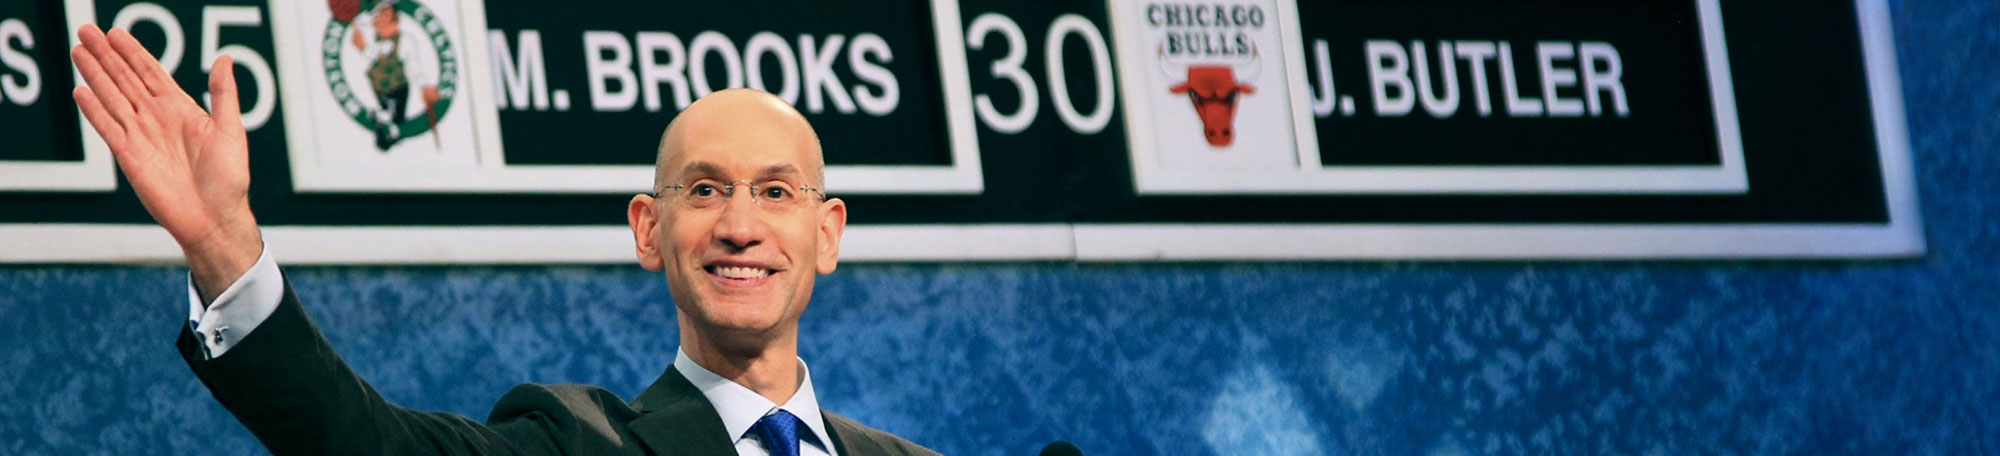 NBA Deputy Commissioner Adam Silver addresses the crowd at the conclusion of the 2011 NBA Draft in Newark, New Jersey